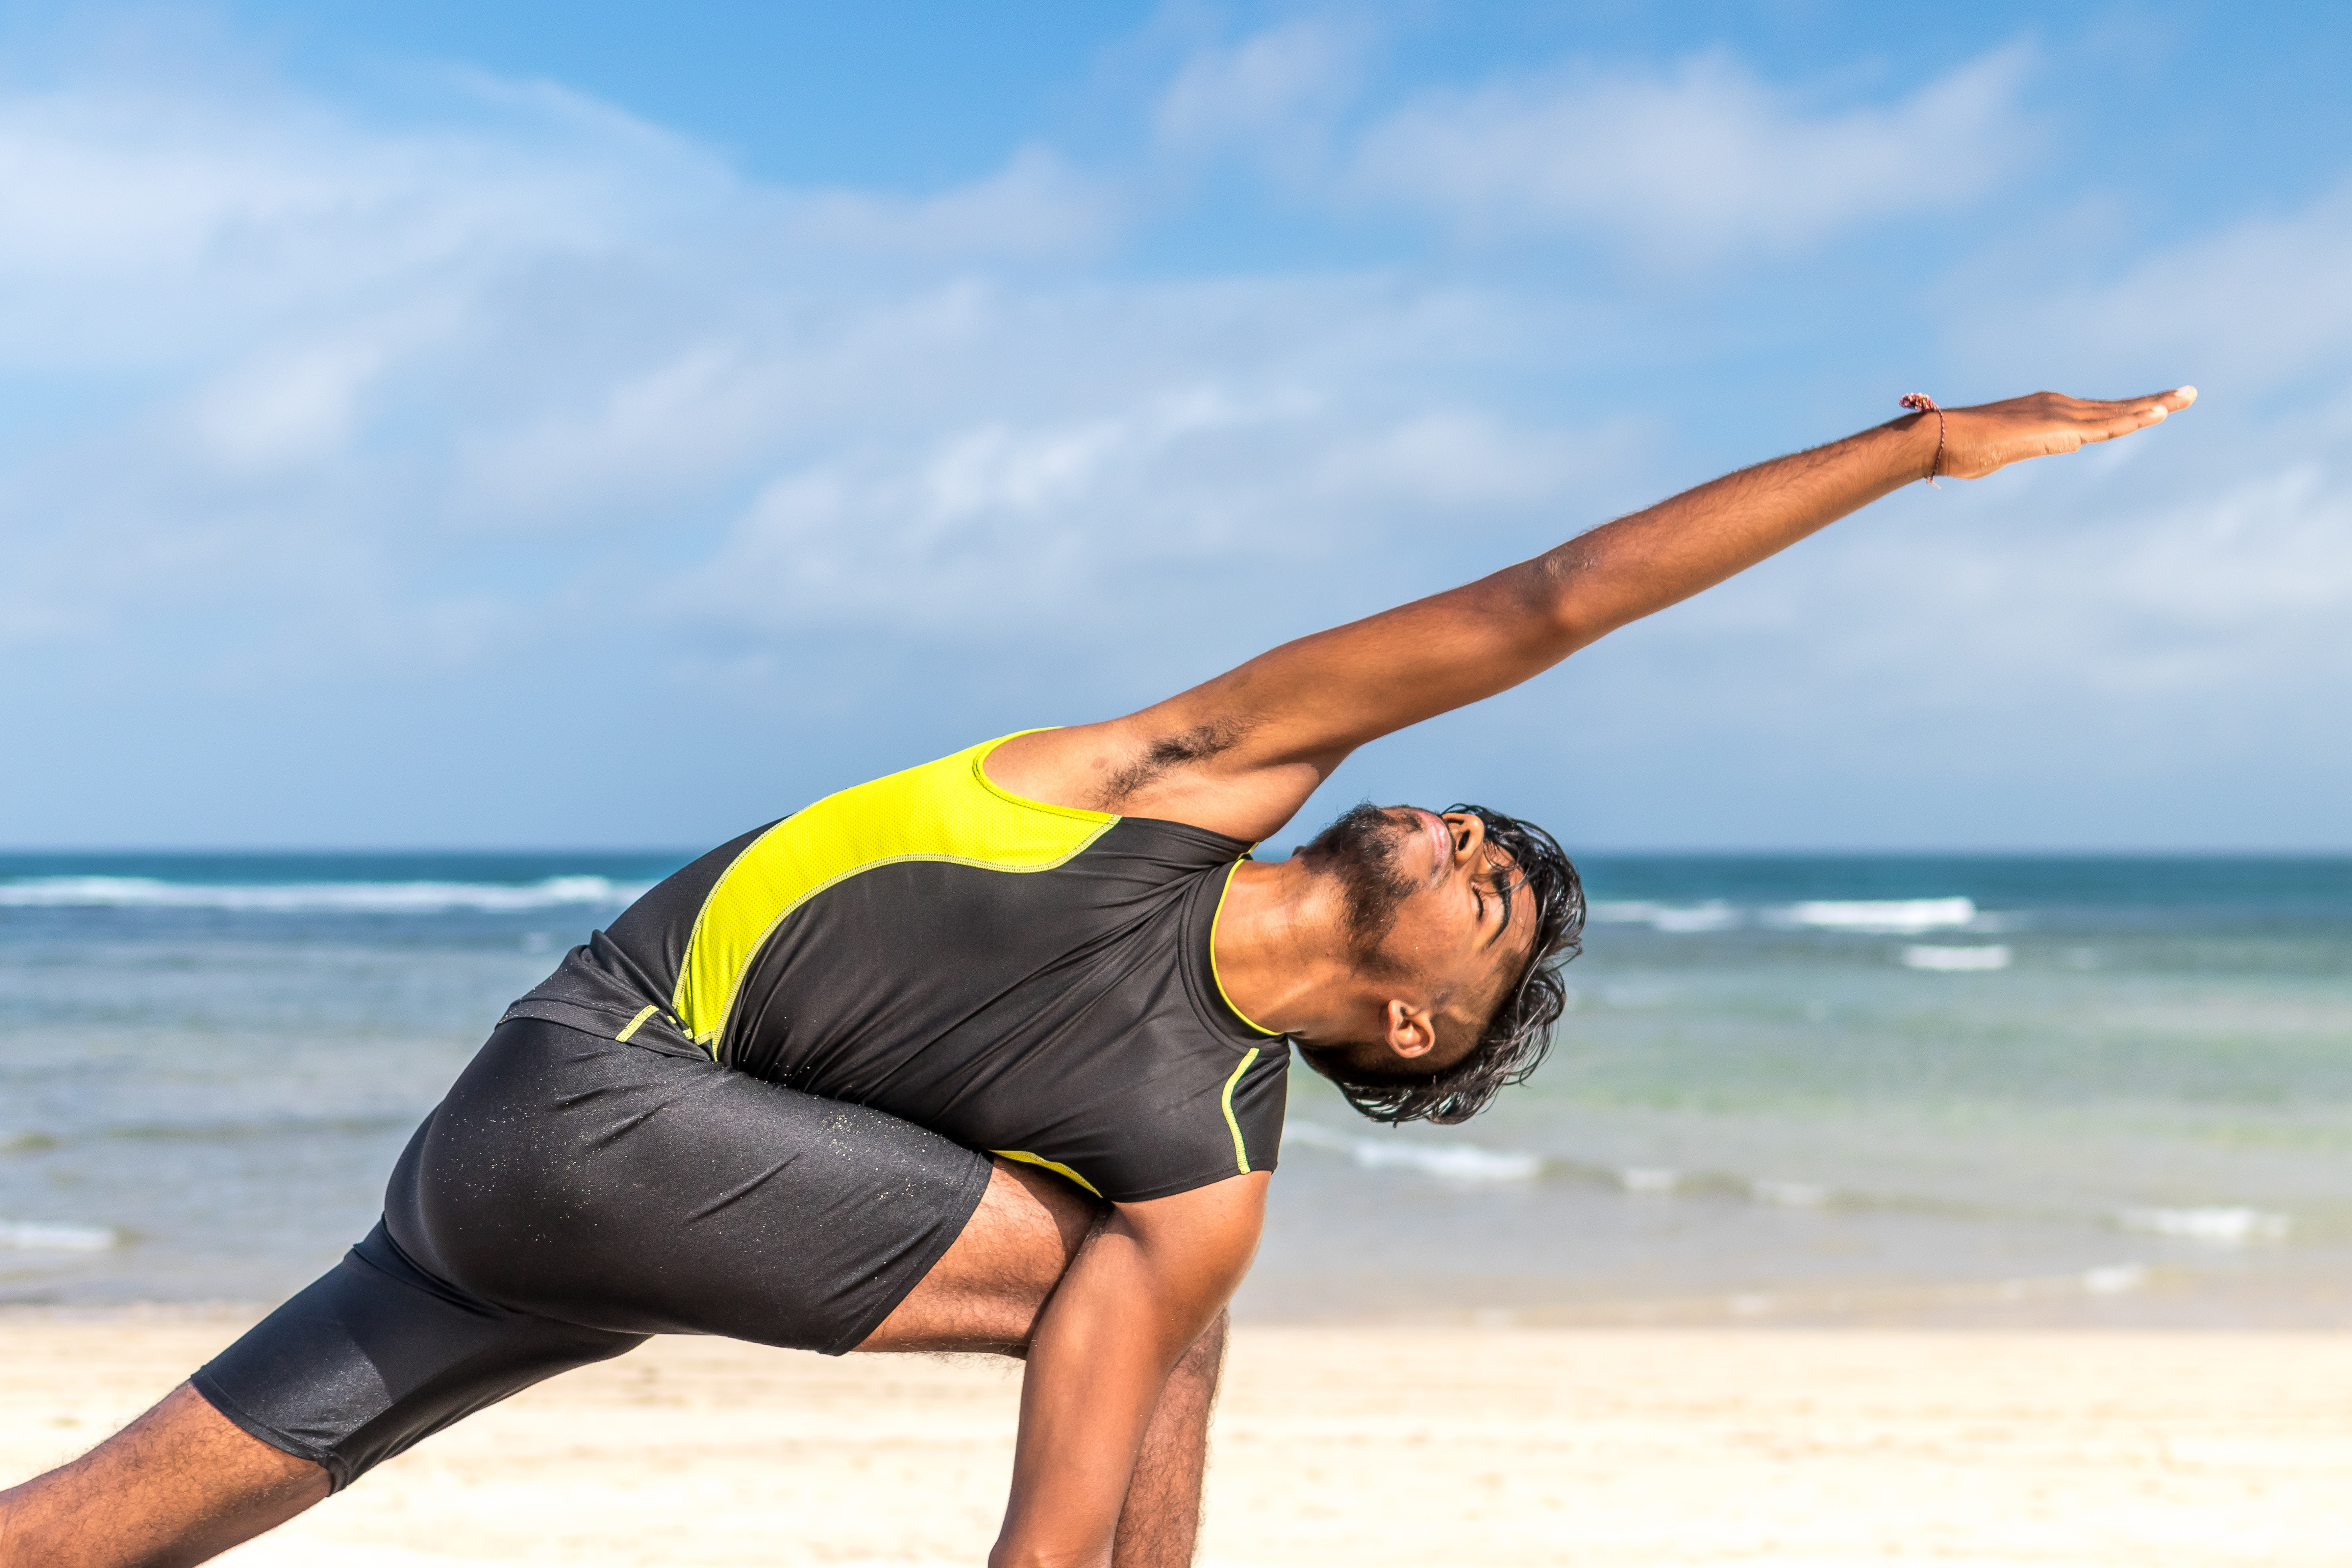 Man in yellow and black tank top doing exercise on seashore at daytime photo